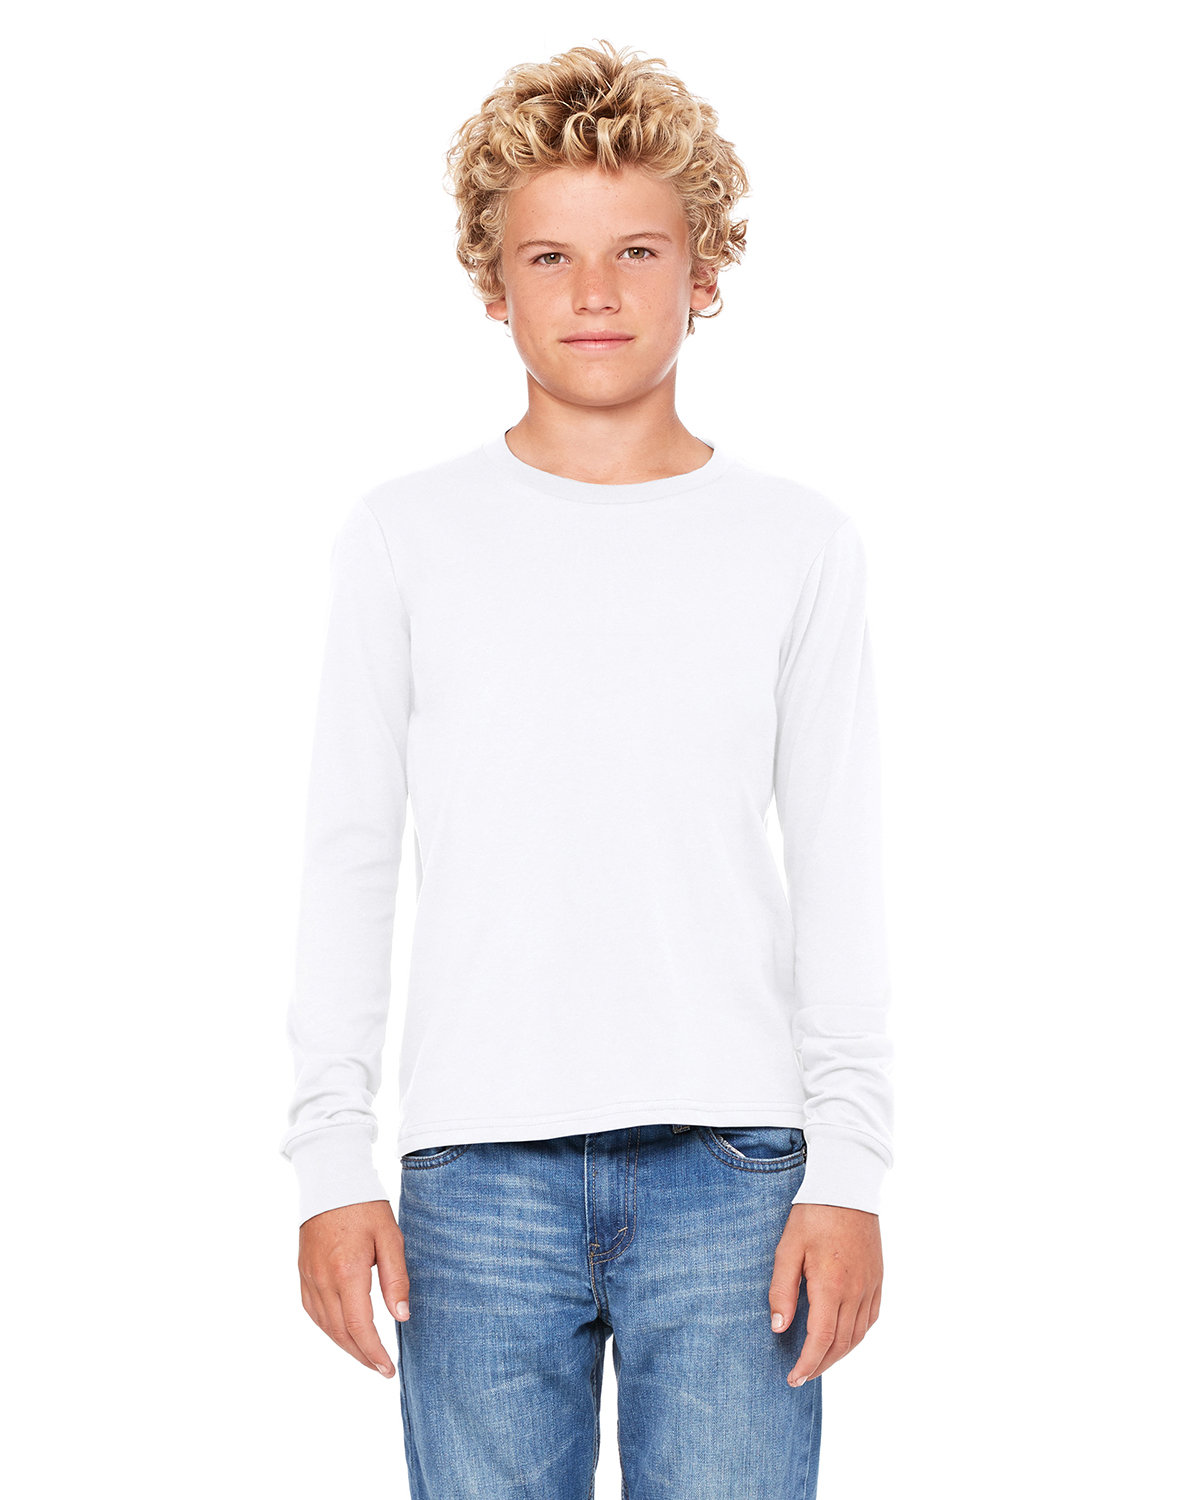 Bella + Canvas Youth Jersey Long-Sleeve T-Shirt WHITE